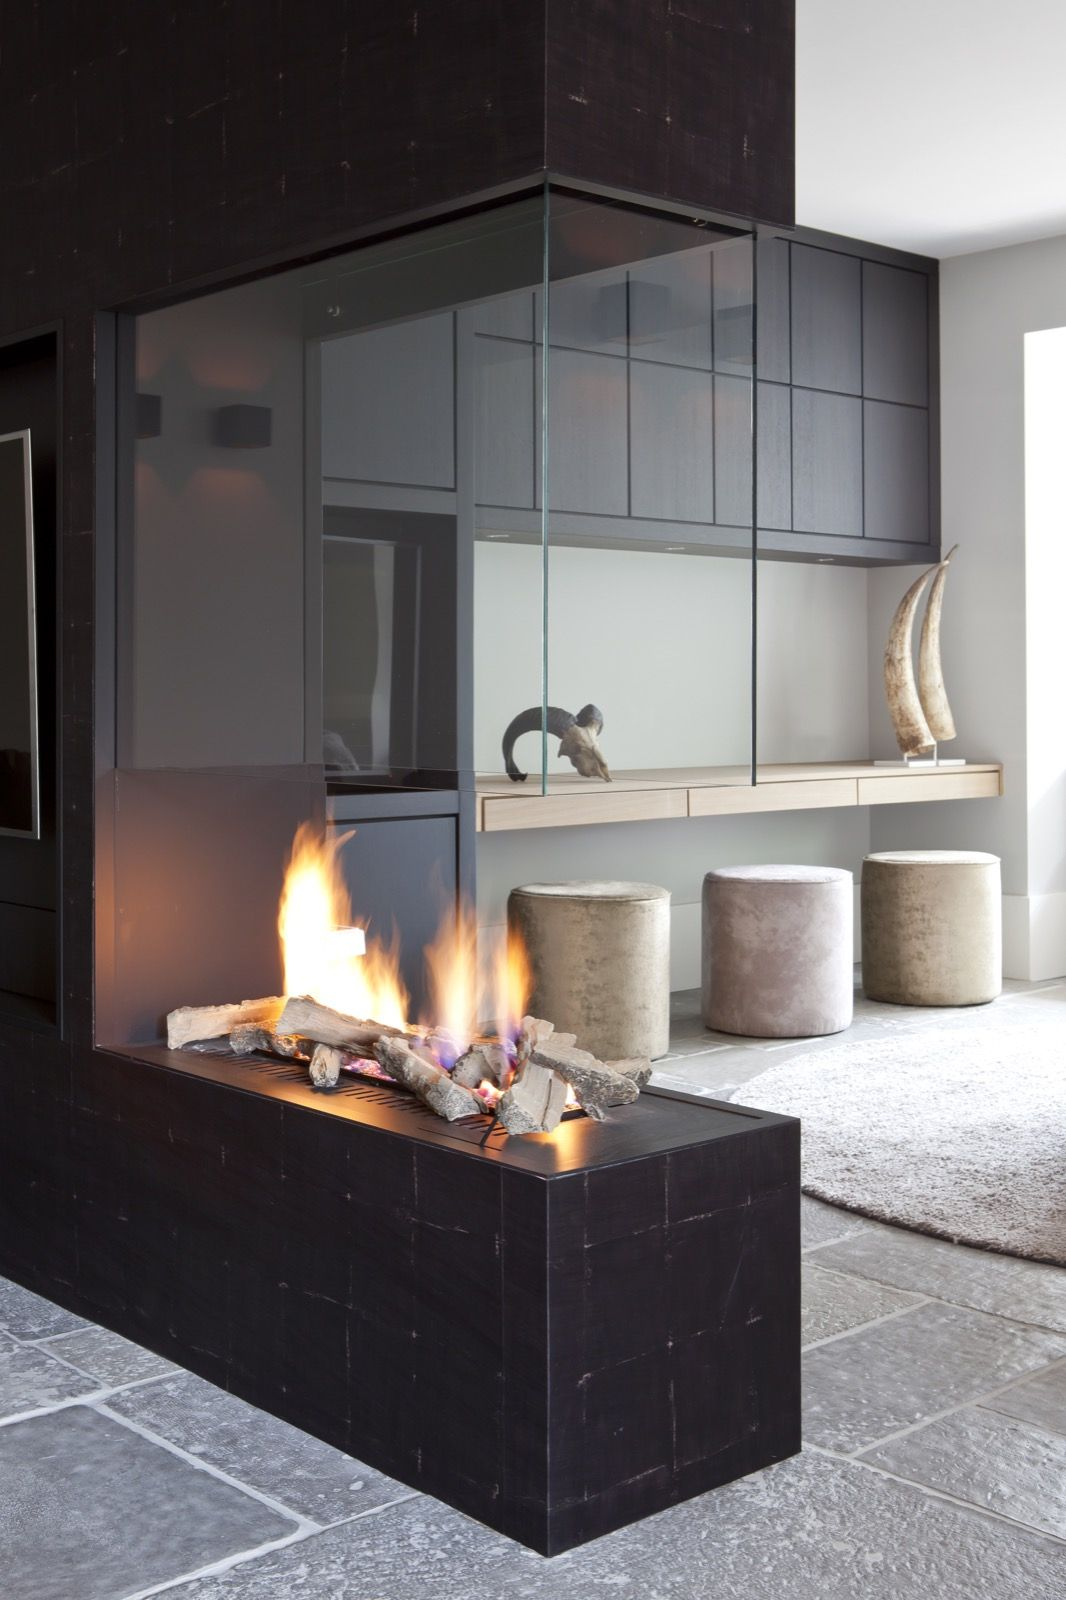 Plan B Contemporary Fireplace Designs Fireplace Design